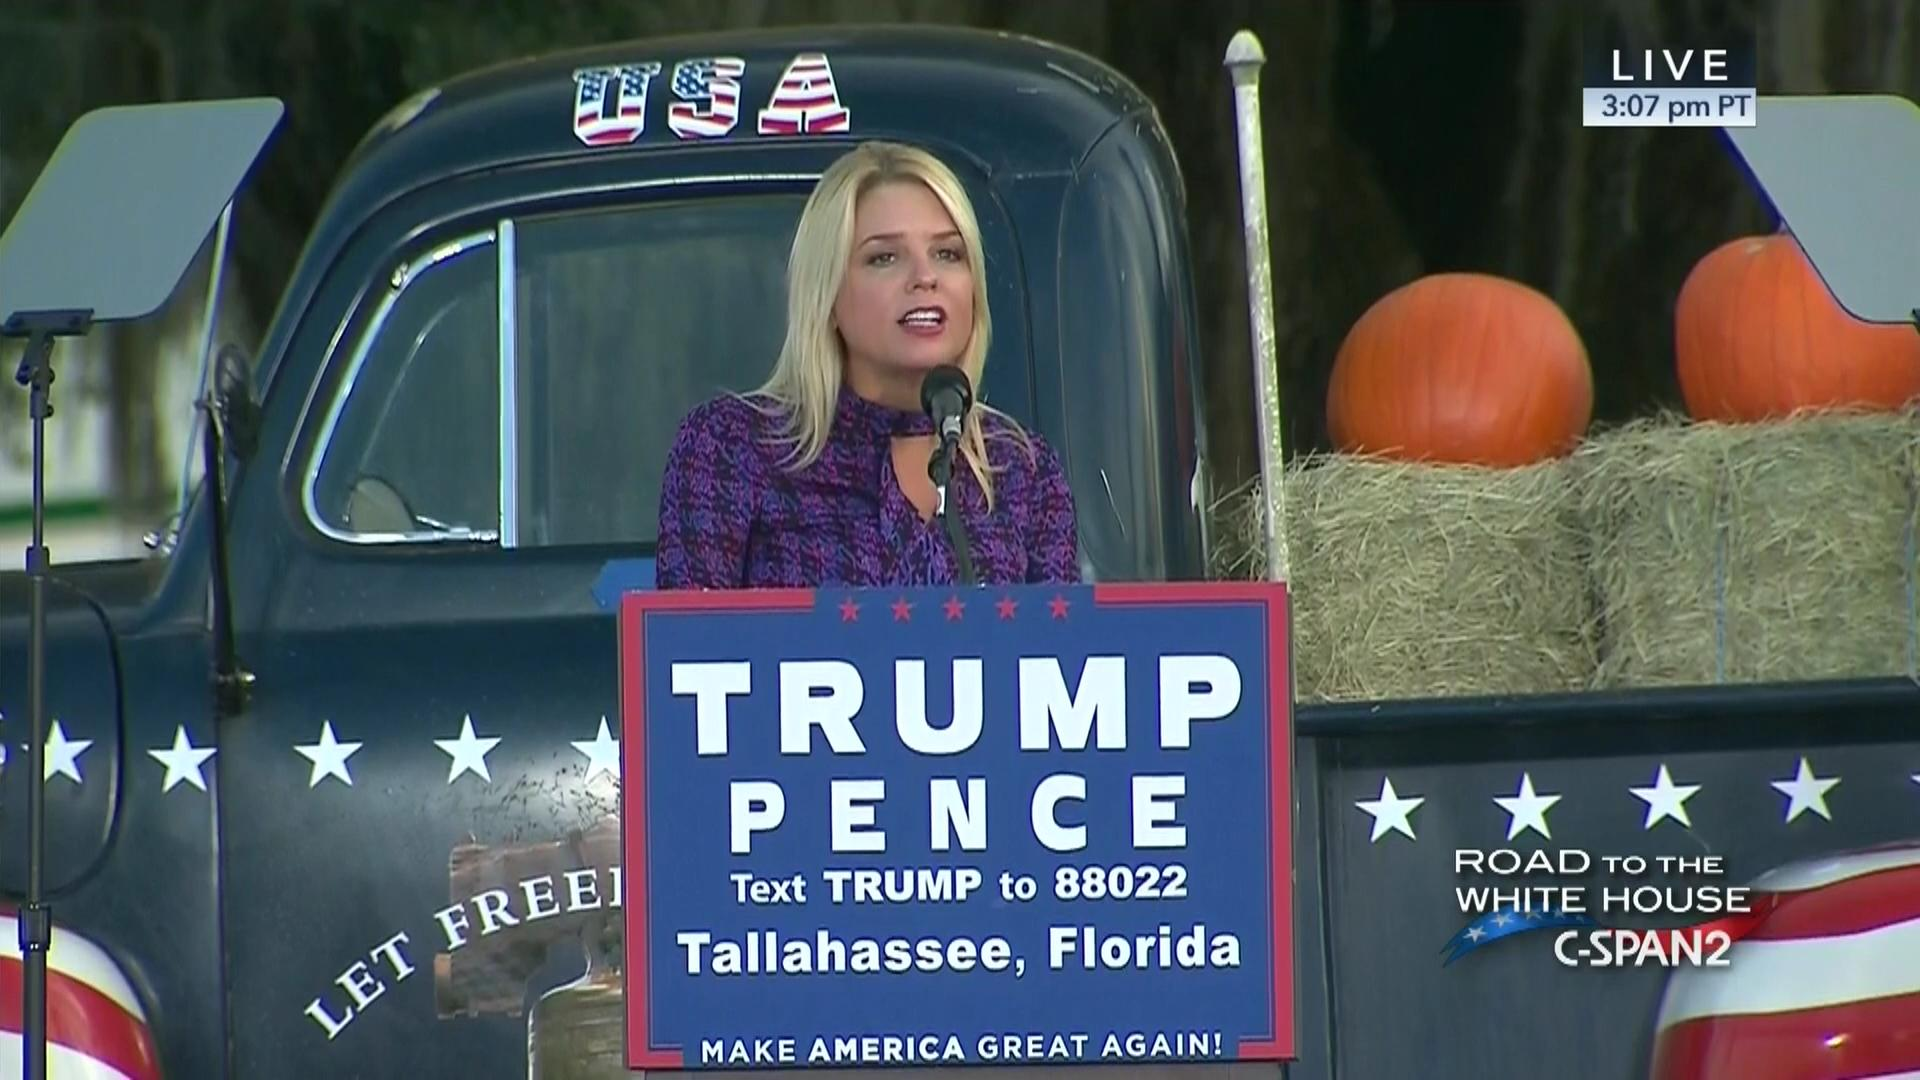 DONALD TRUMP TALLAHASSEE RALLY EVENT TALLAHASSEE CAR MUSEUM FL 10-25-2016